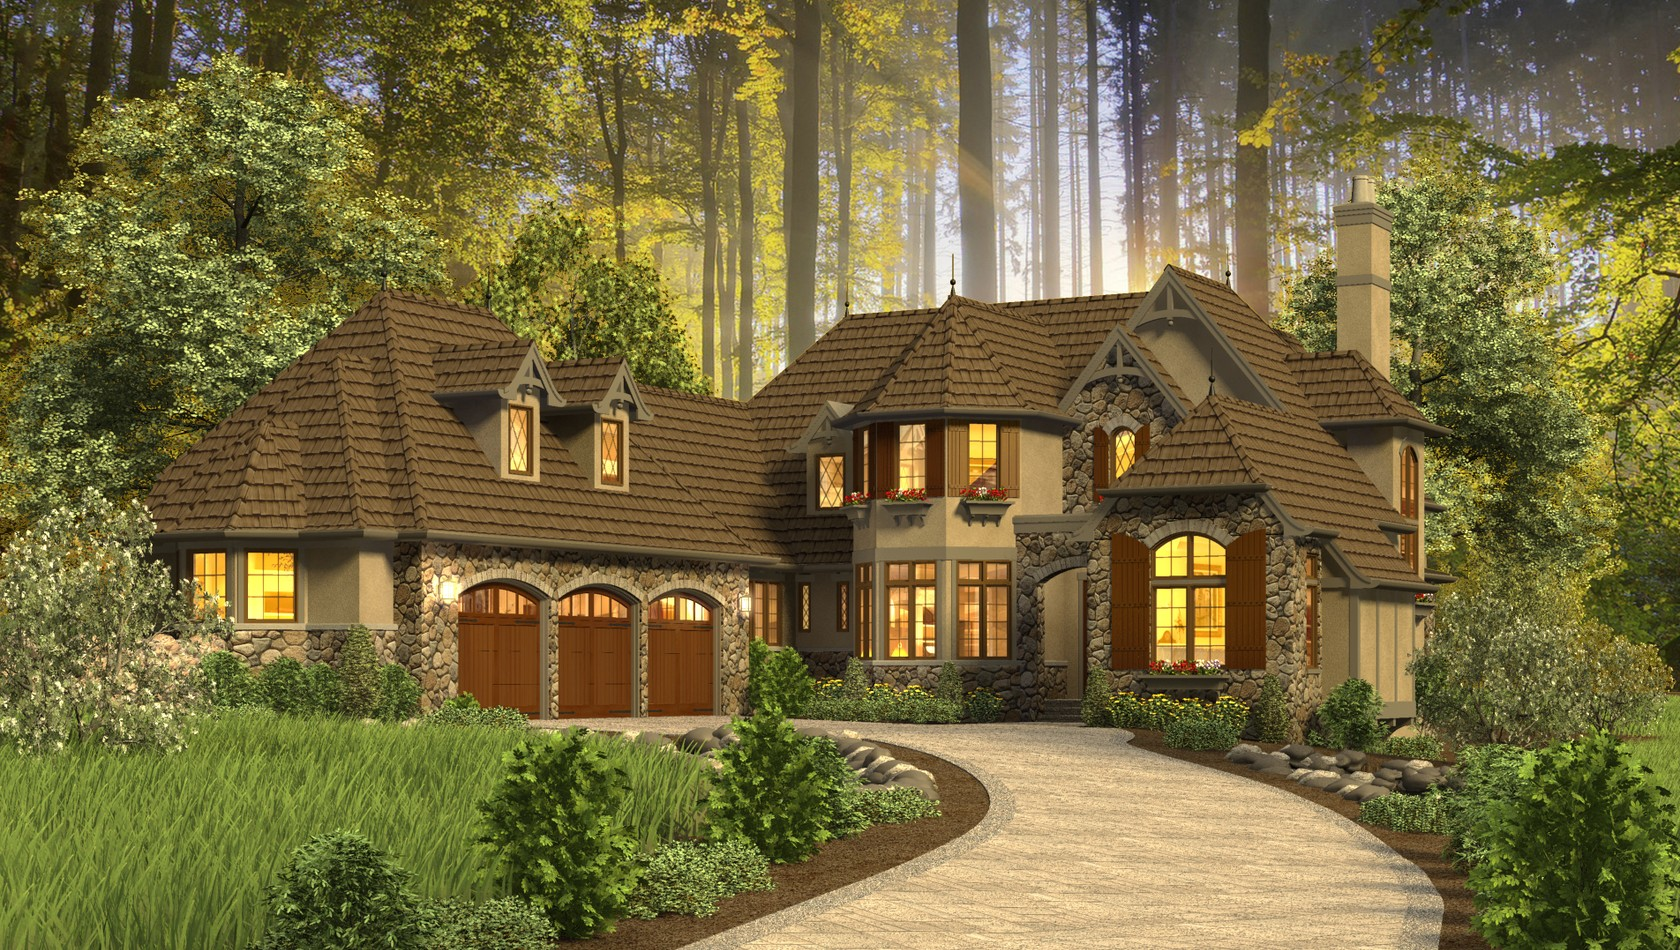 Houseplans Co Of 13 Simple Whimsical House Plans Ideas Photo Building